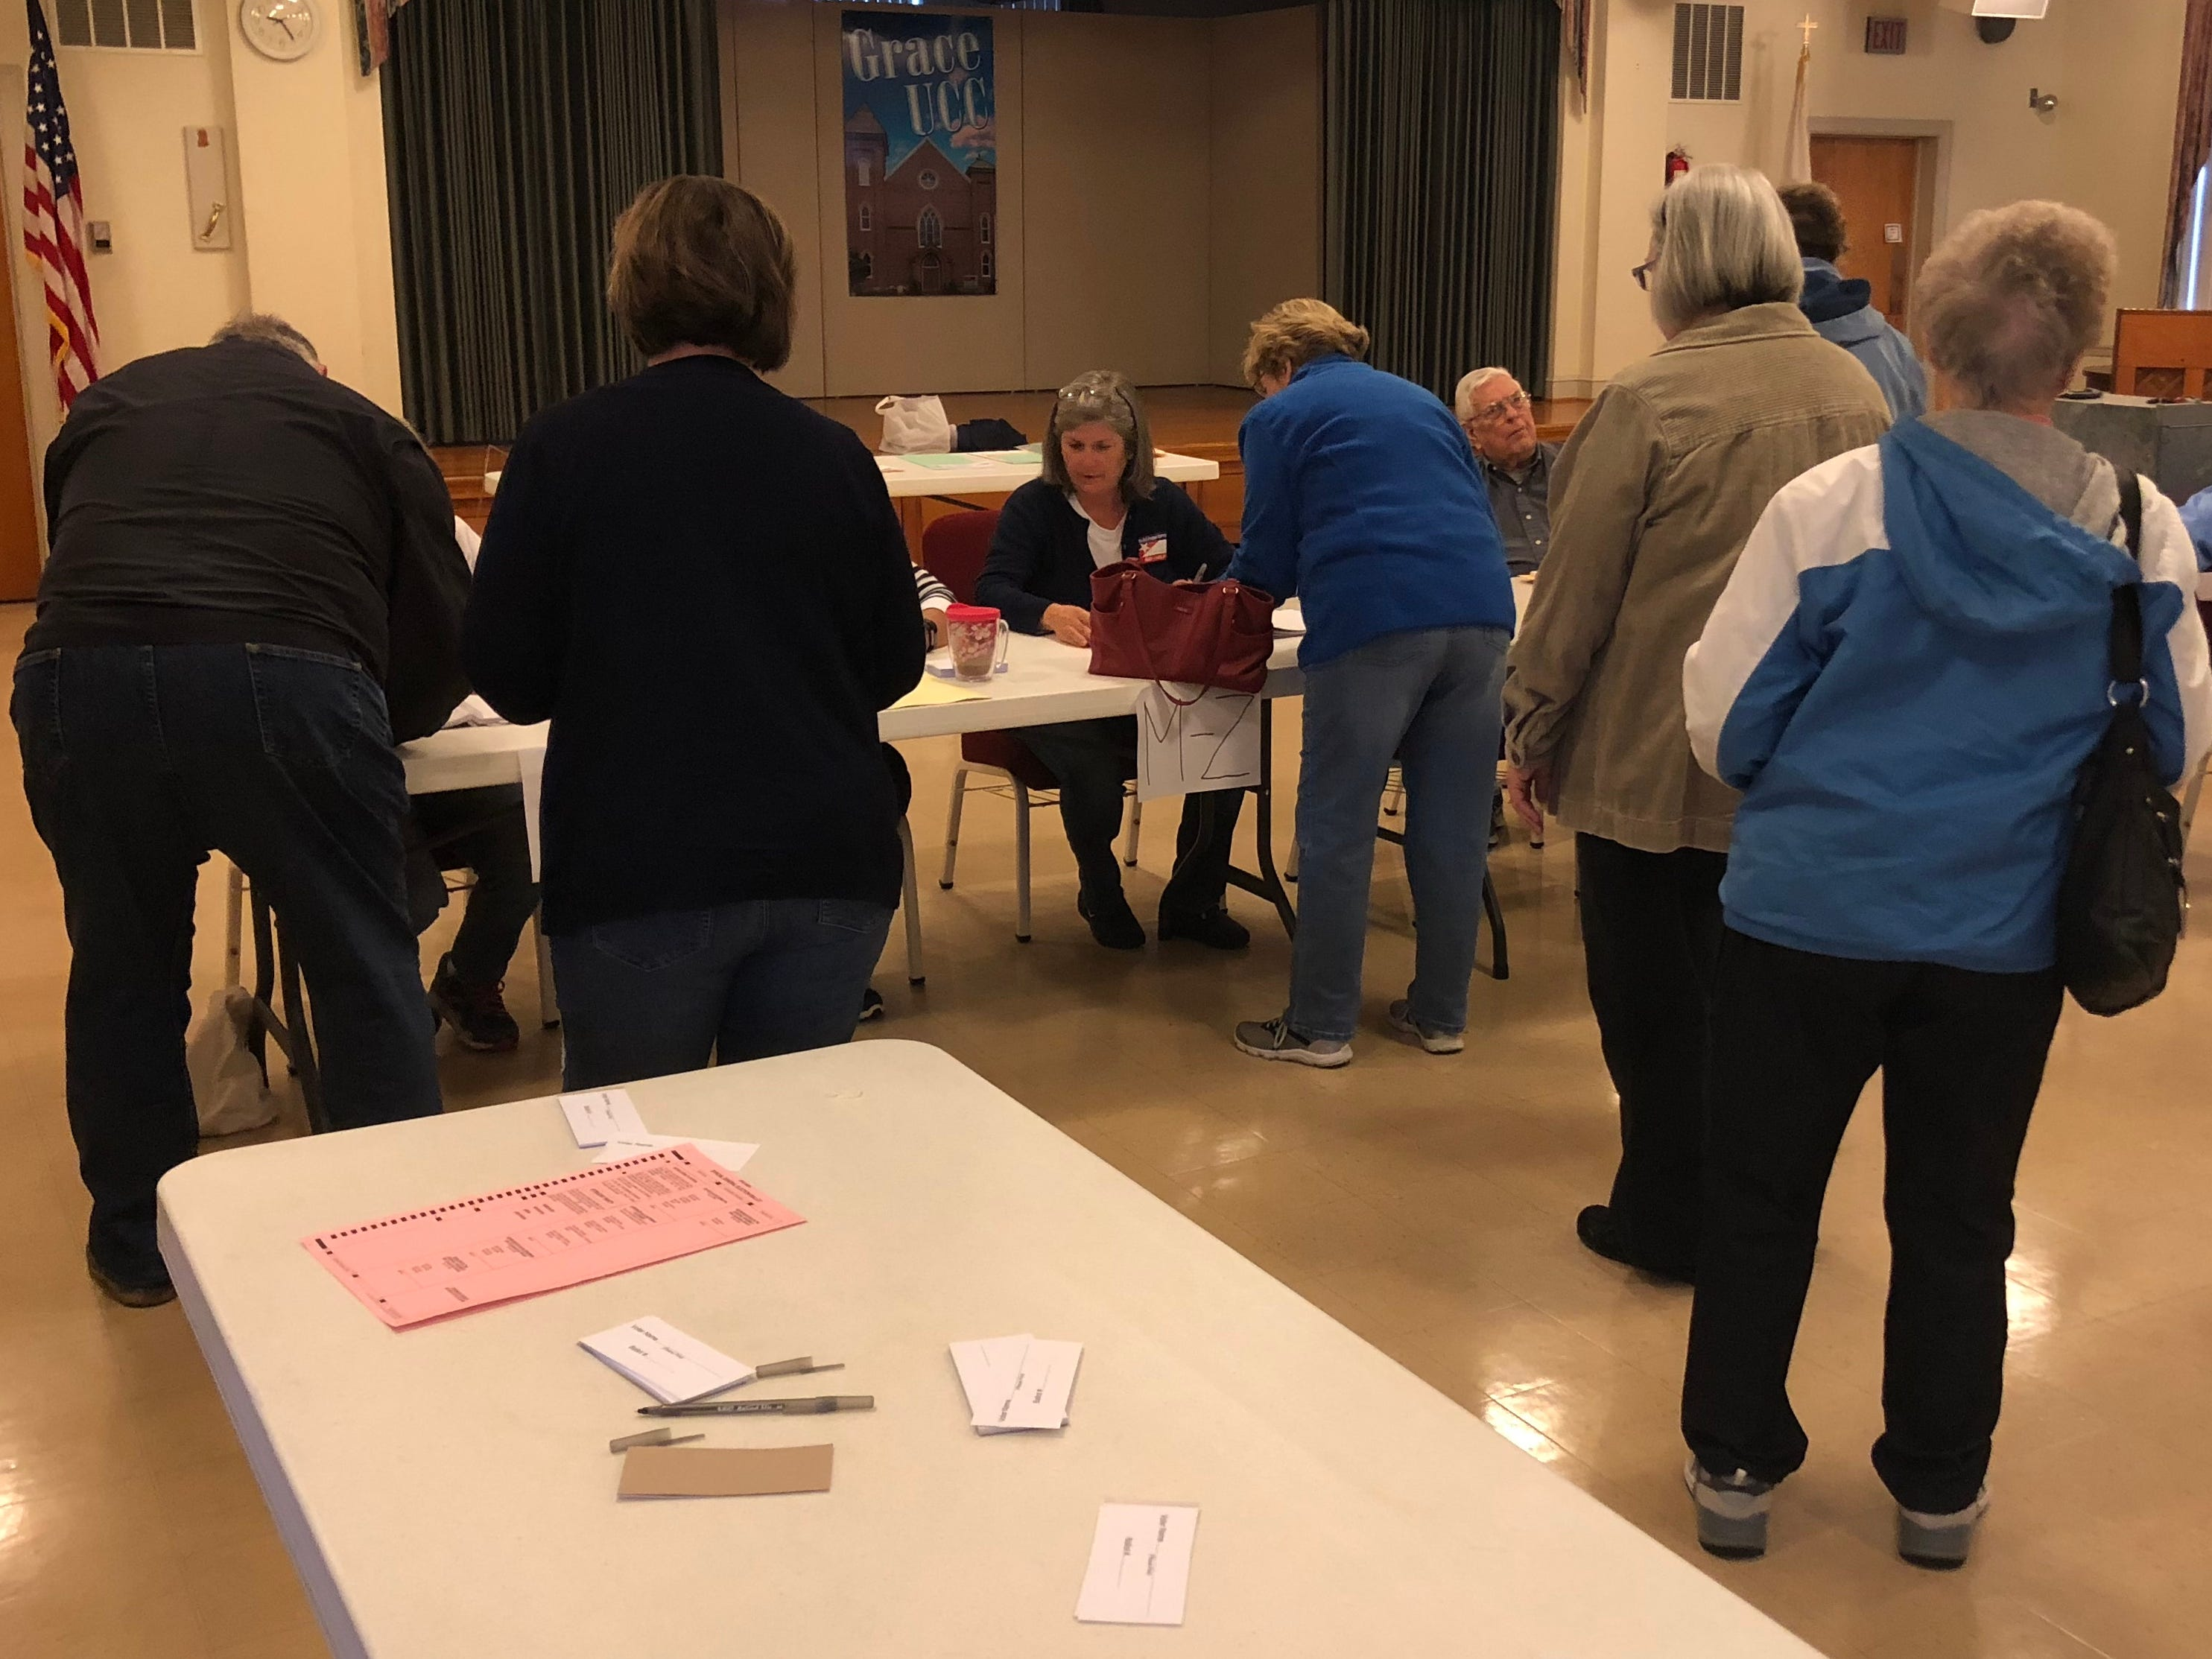 Residents line up to vote in the mid-term election at Grace United Church of Christ in Greencastle the morning of Tuesday, Nov. 6, 2018.